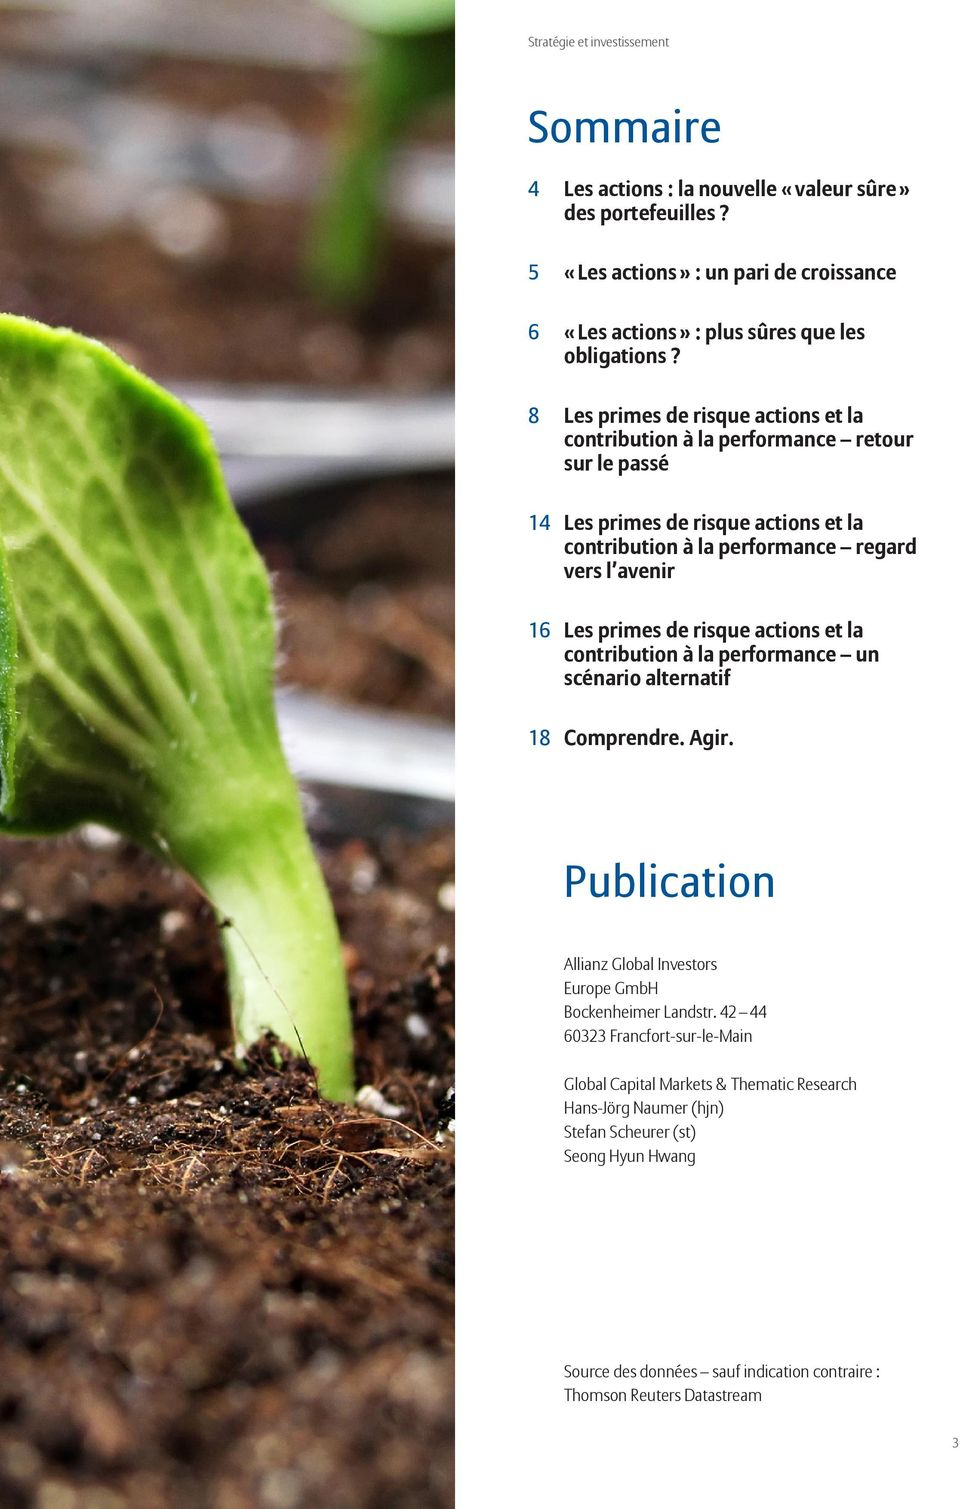 de risque actions et la contribution à la performance un scénario alternatif 18 Comprendre. Agir. Publication Allianz Global Investors Europe GmbH Bockenheimer Landstr.